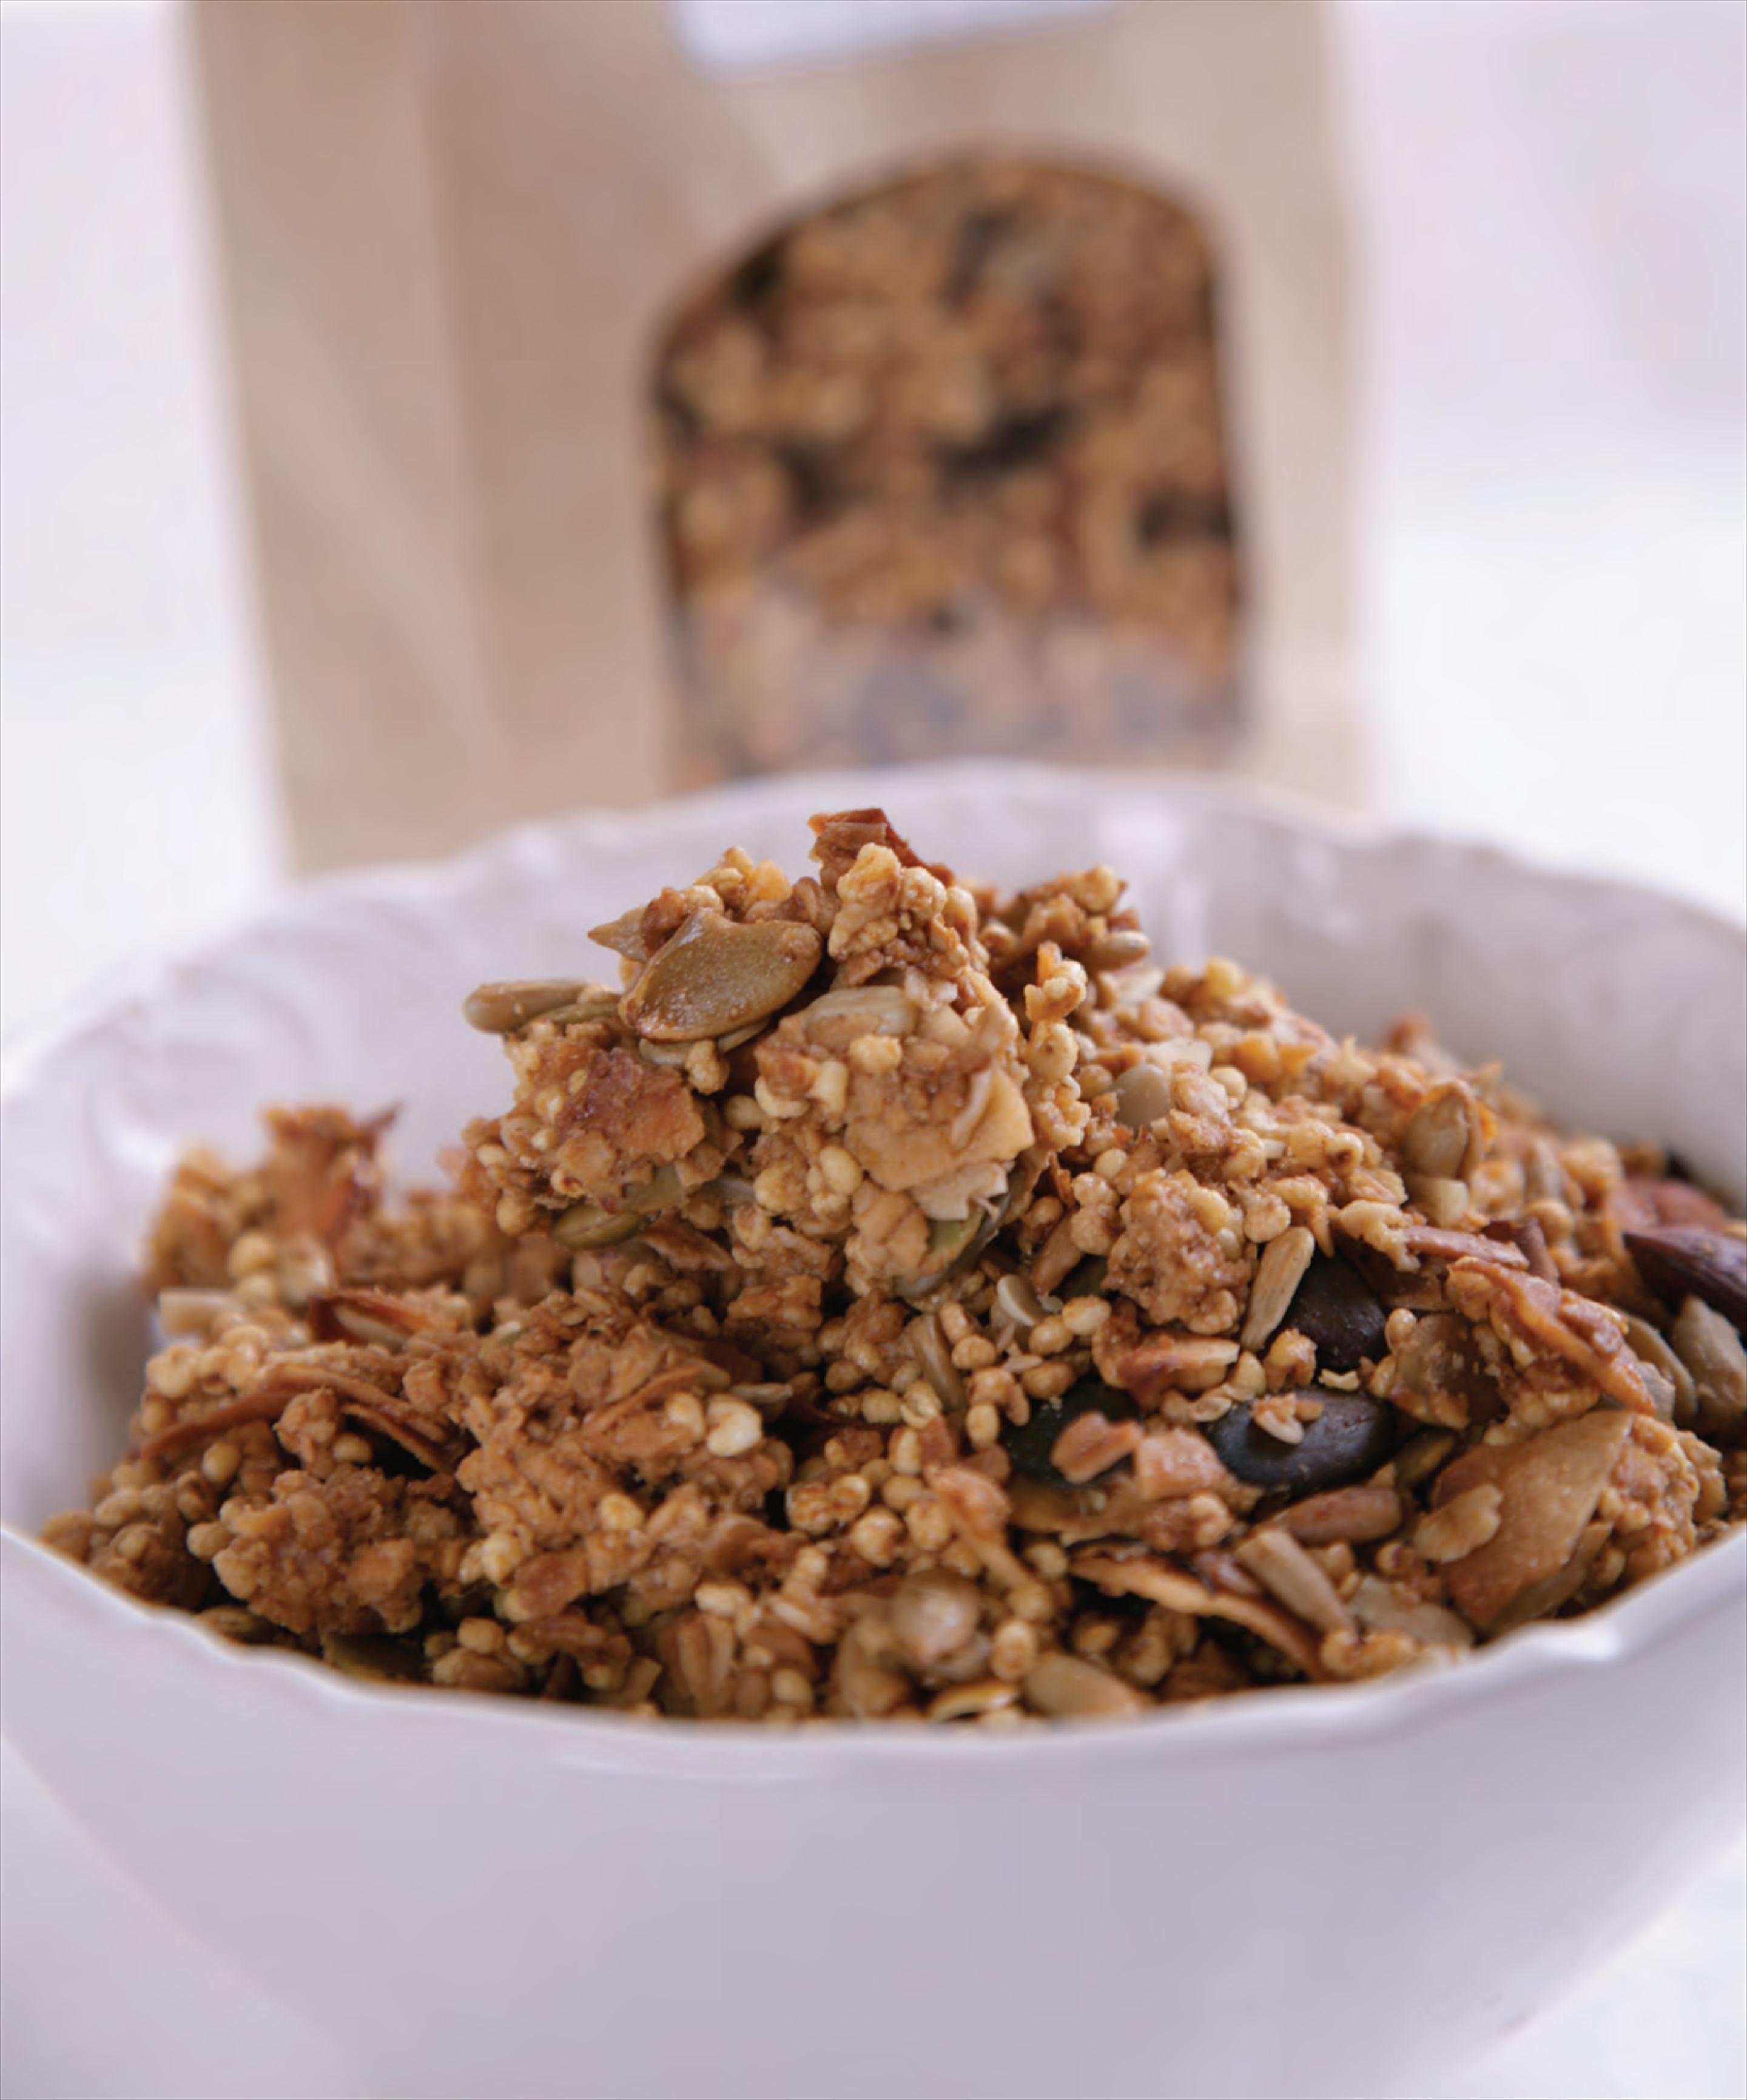 Natalie's maple granola